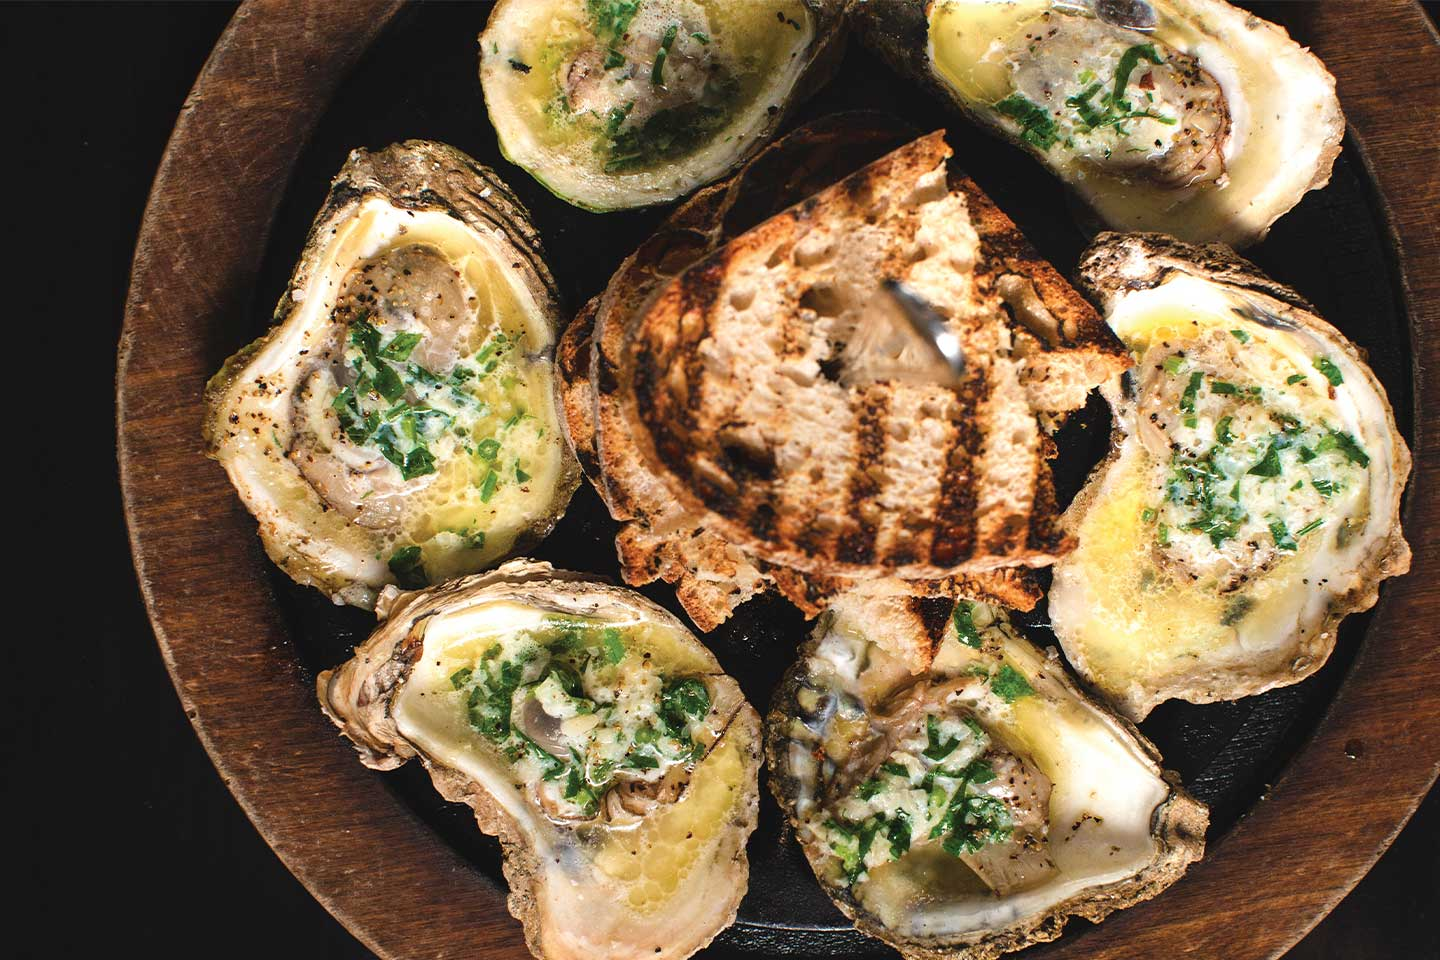 grilled chesapeake oysters with toasted ciabatta bread